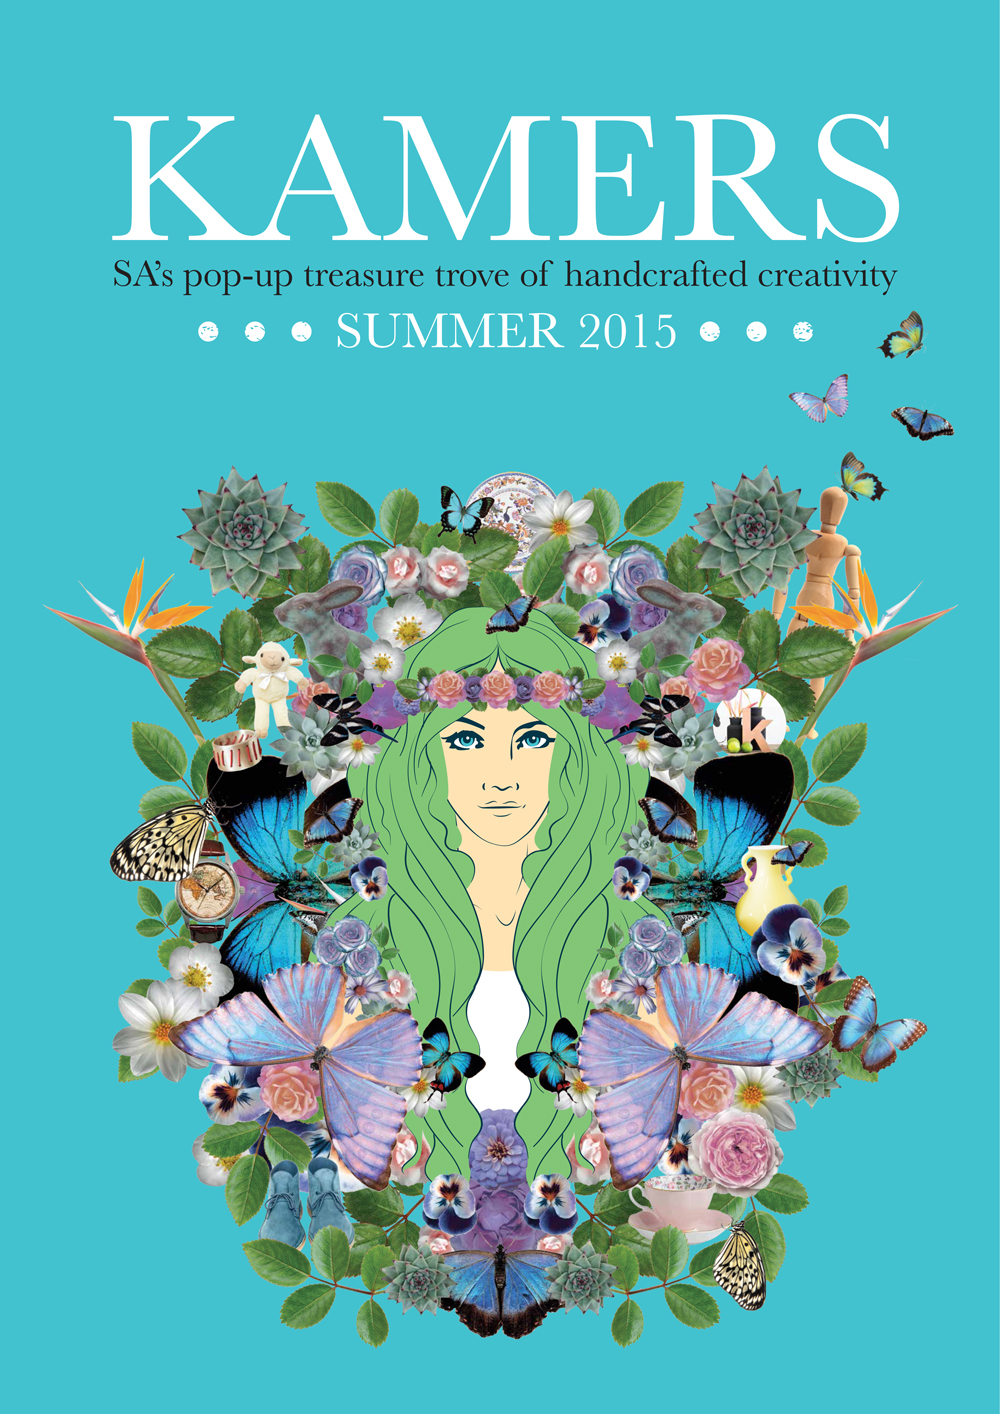 KAMERS Summer 2015 - Hermanus 24-27 Sept | Stellenbosch 27 Oct-1 Nov | Irene, Pretoria 1-6 Dec - www.kamersvol.com